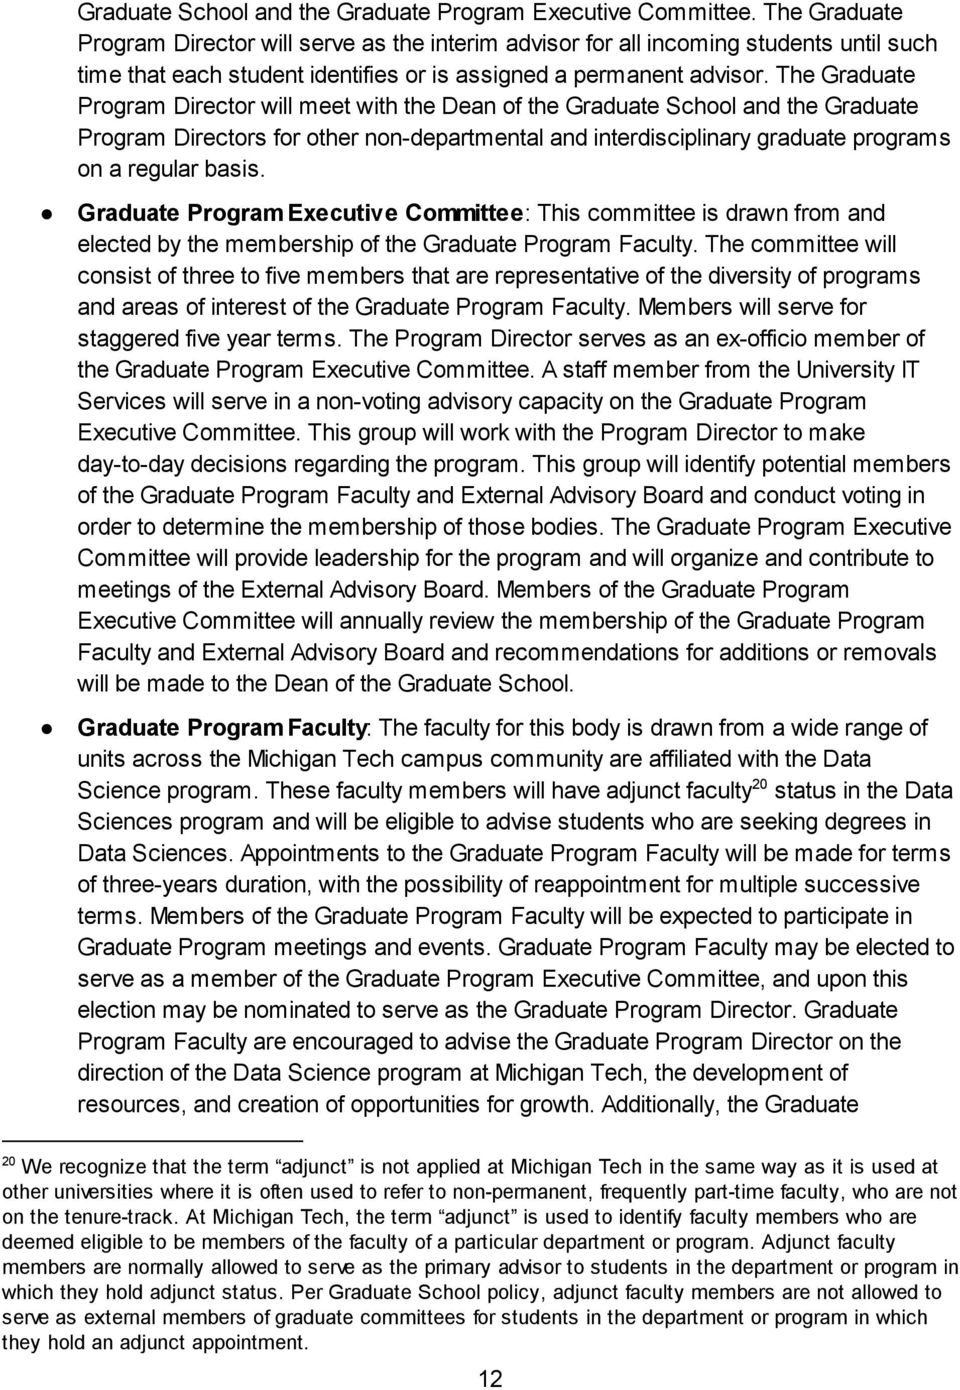 The Graduate Program Director will meet with the Dean of the Graduate School and the Graduate Program Directors for other non-departmental and interdisciplinary graduate programs on a regular basis.